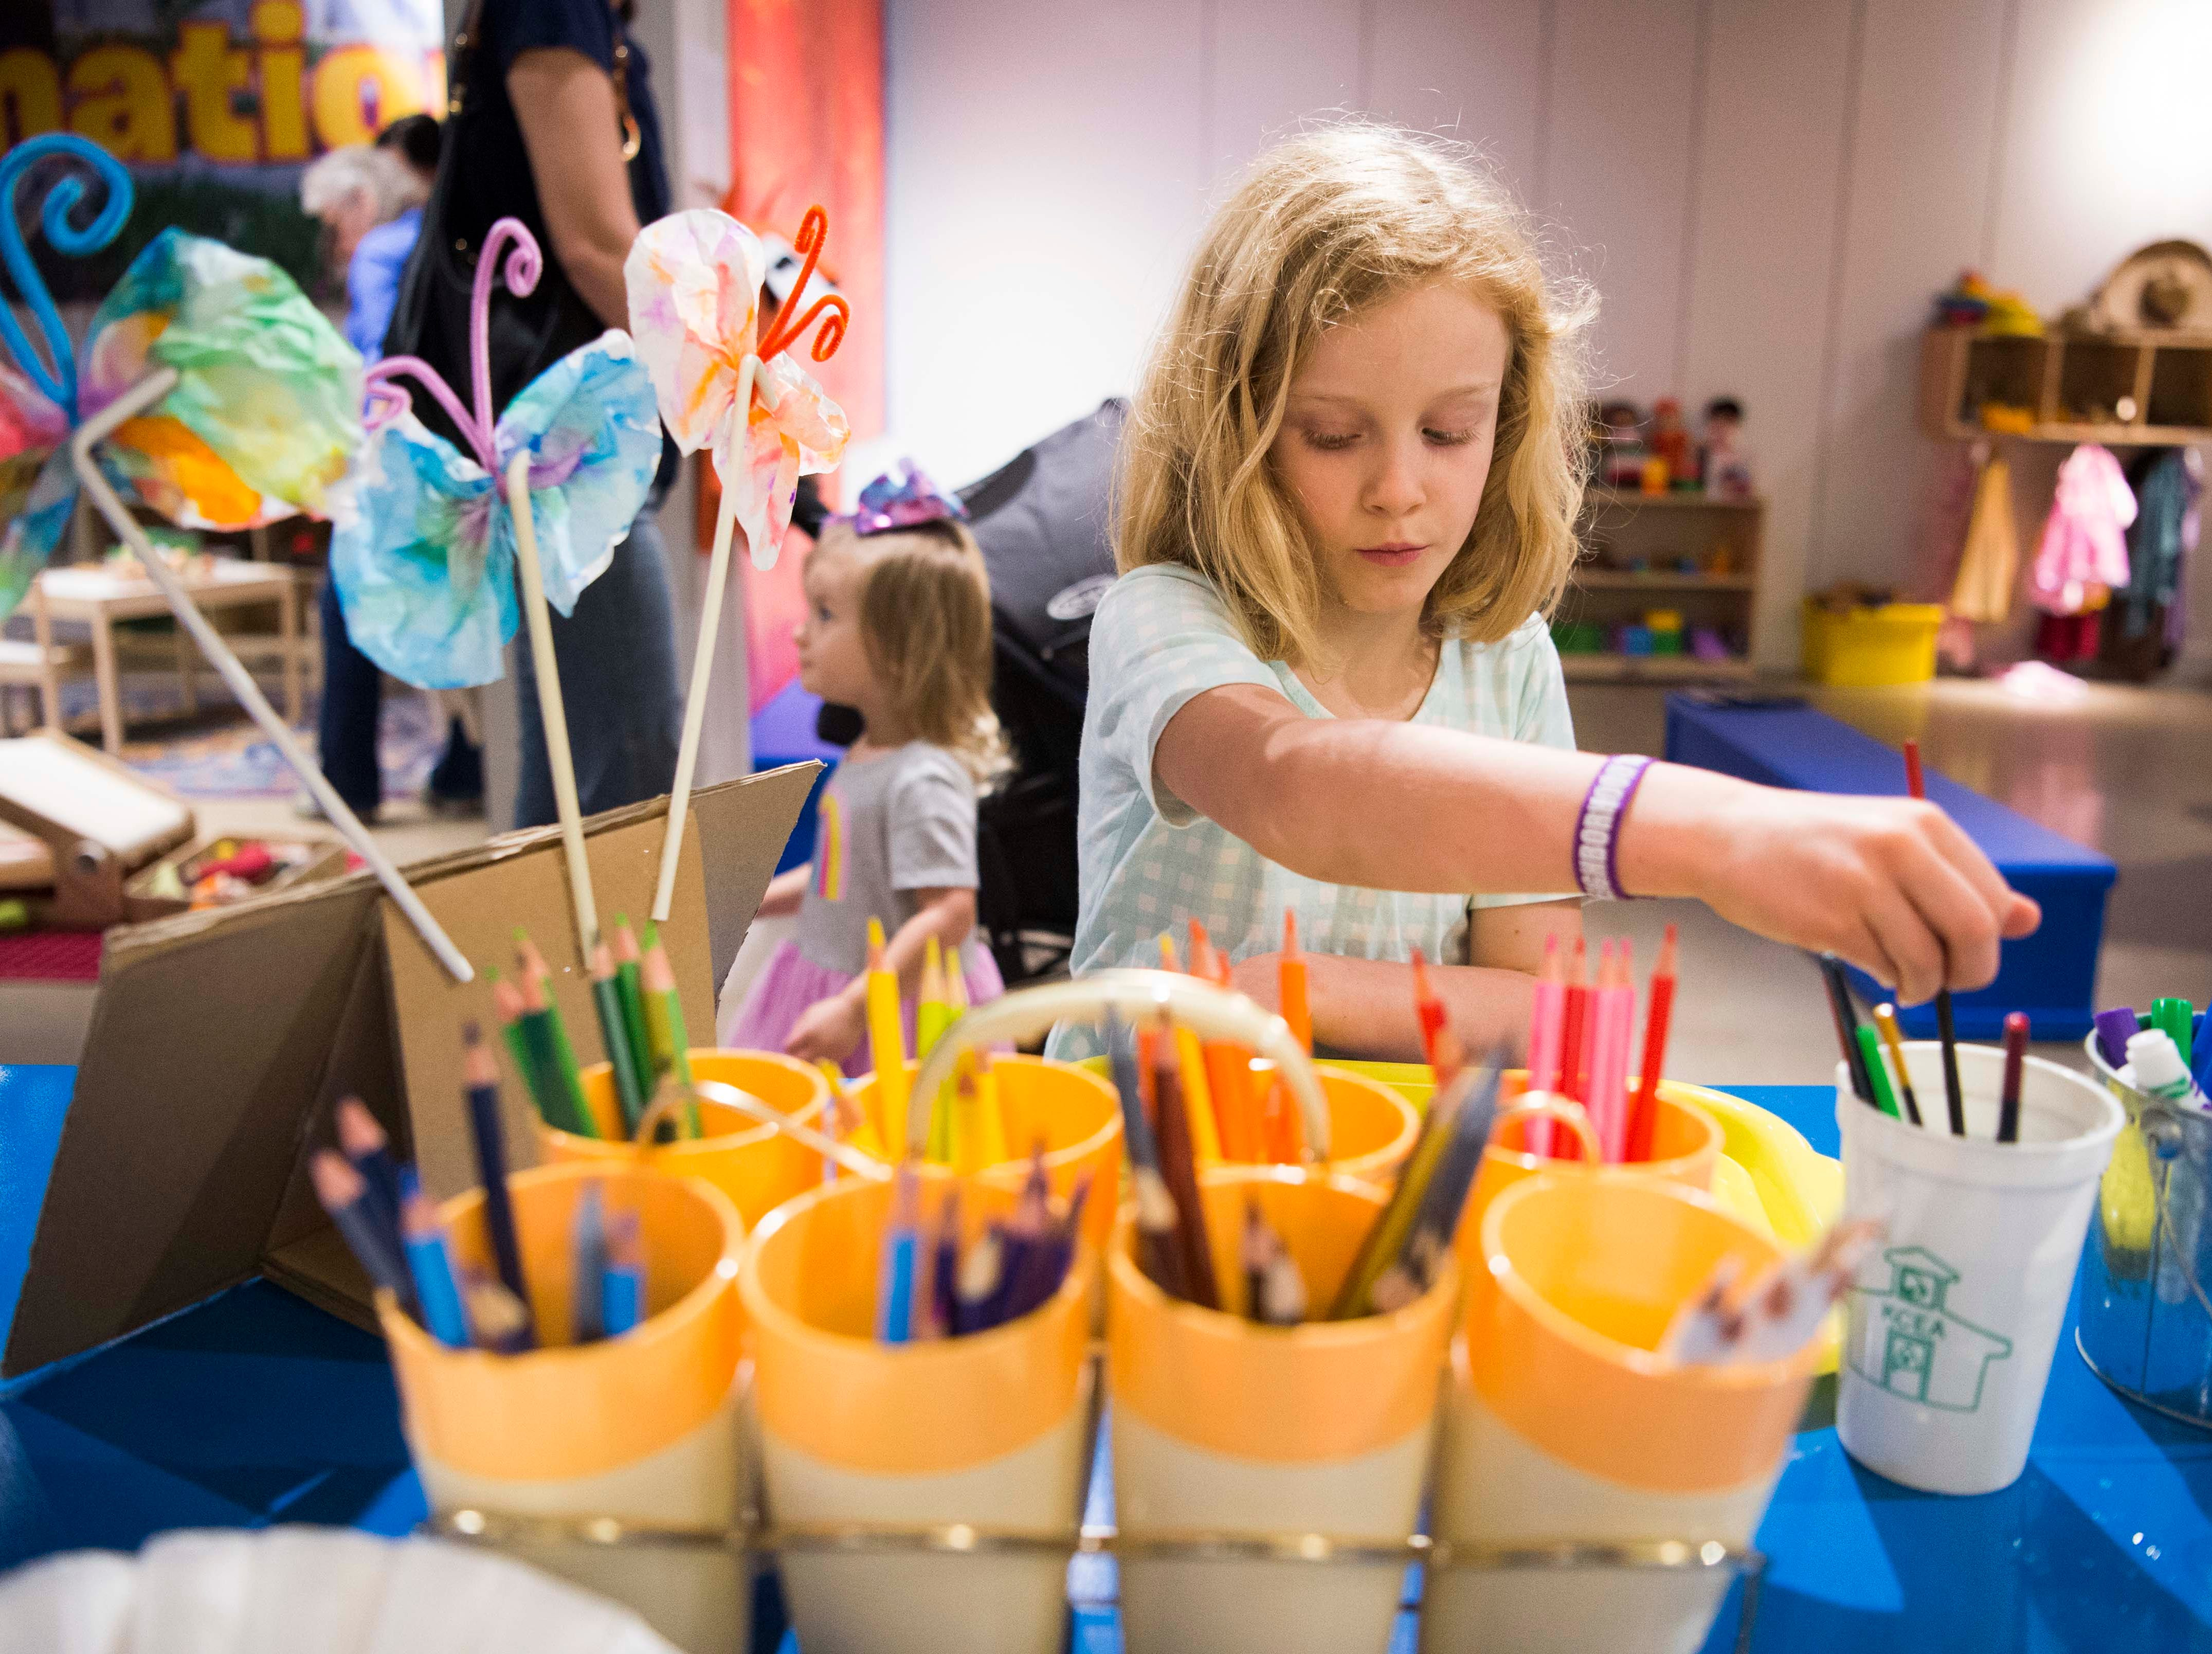 Ellie Sams, 7, of Knoxville makes a coffee filter butterfly at the new Muse at the Mall at West Town Mall in Knoxville Thursday, April 11, 2019. The Muse offers STEAM (science, technology, engineering, art, math) based play for Knoxville families, and will open to the public on Saturday April 13.